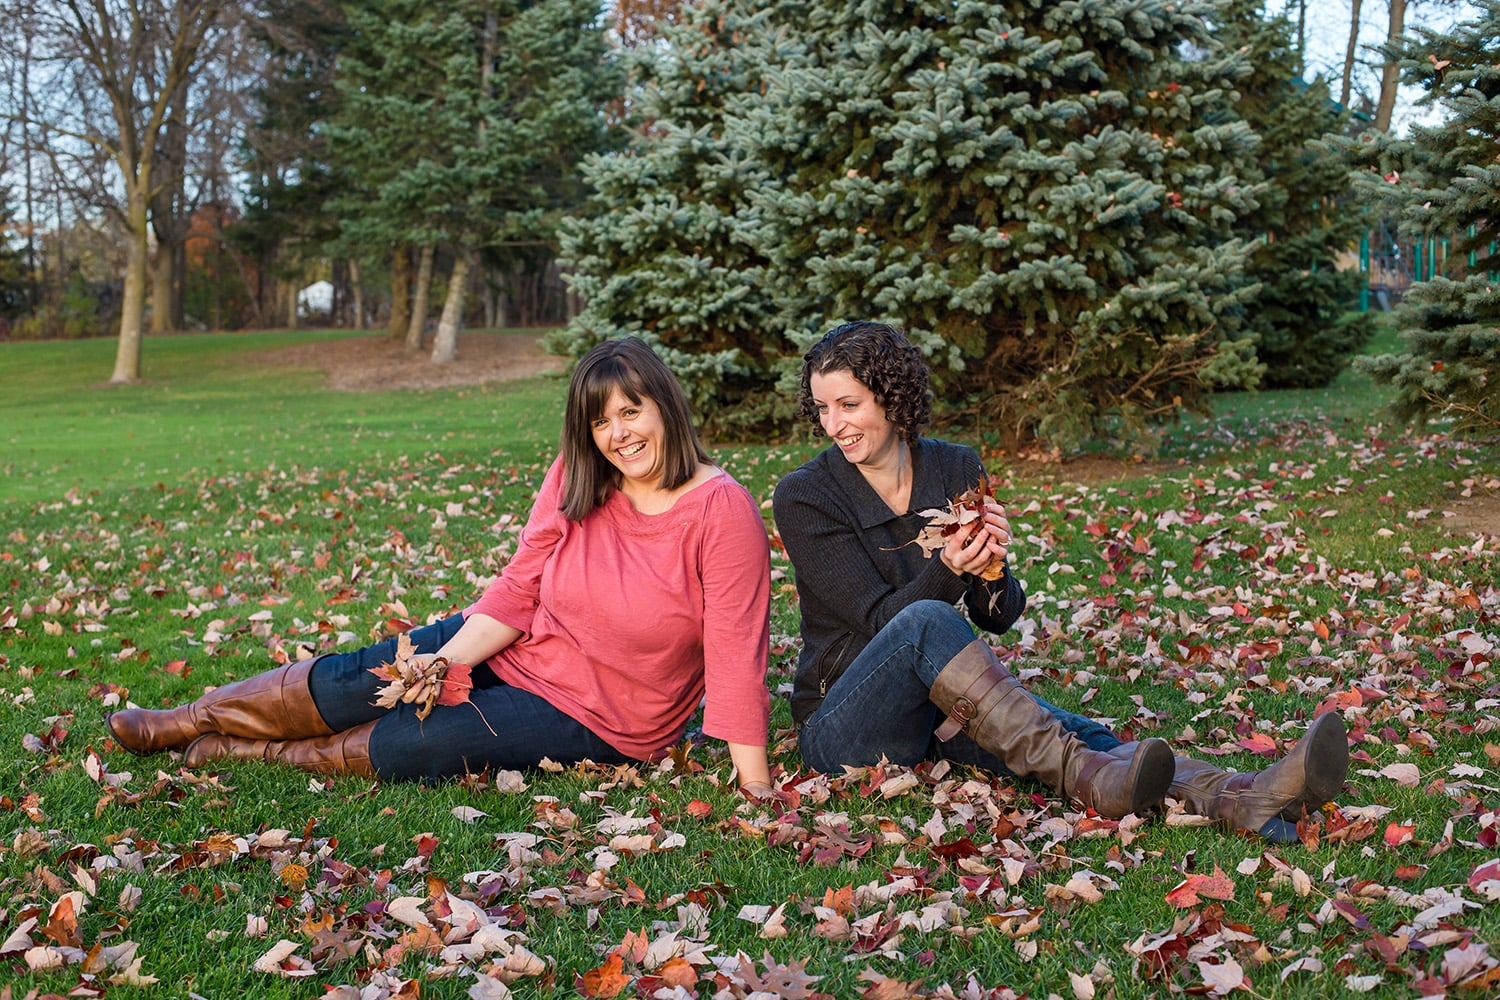 Lori & Erin: We go together like flip flops and sunny days... - When we're not photographing your family, we're usually spending time with ours. Our husbands, babies, fur babies, friends and family are the reason we've created this amazing program.We're a team (and a pretty great one if we do say so ourselves), so you'll probably find both of us at most events. Lori coordinates portrait sessions and will work closely with you in planning your sessions. Then either of us will photograph it!Our business is based on you and your most important relationships. We want to help you treasure the time you have with your spouse, kids, family and friends.Just like we do with ours.